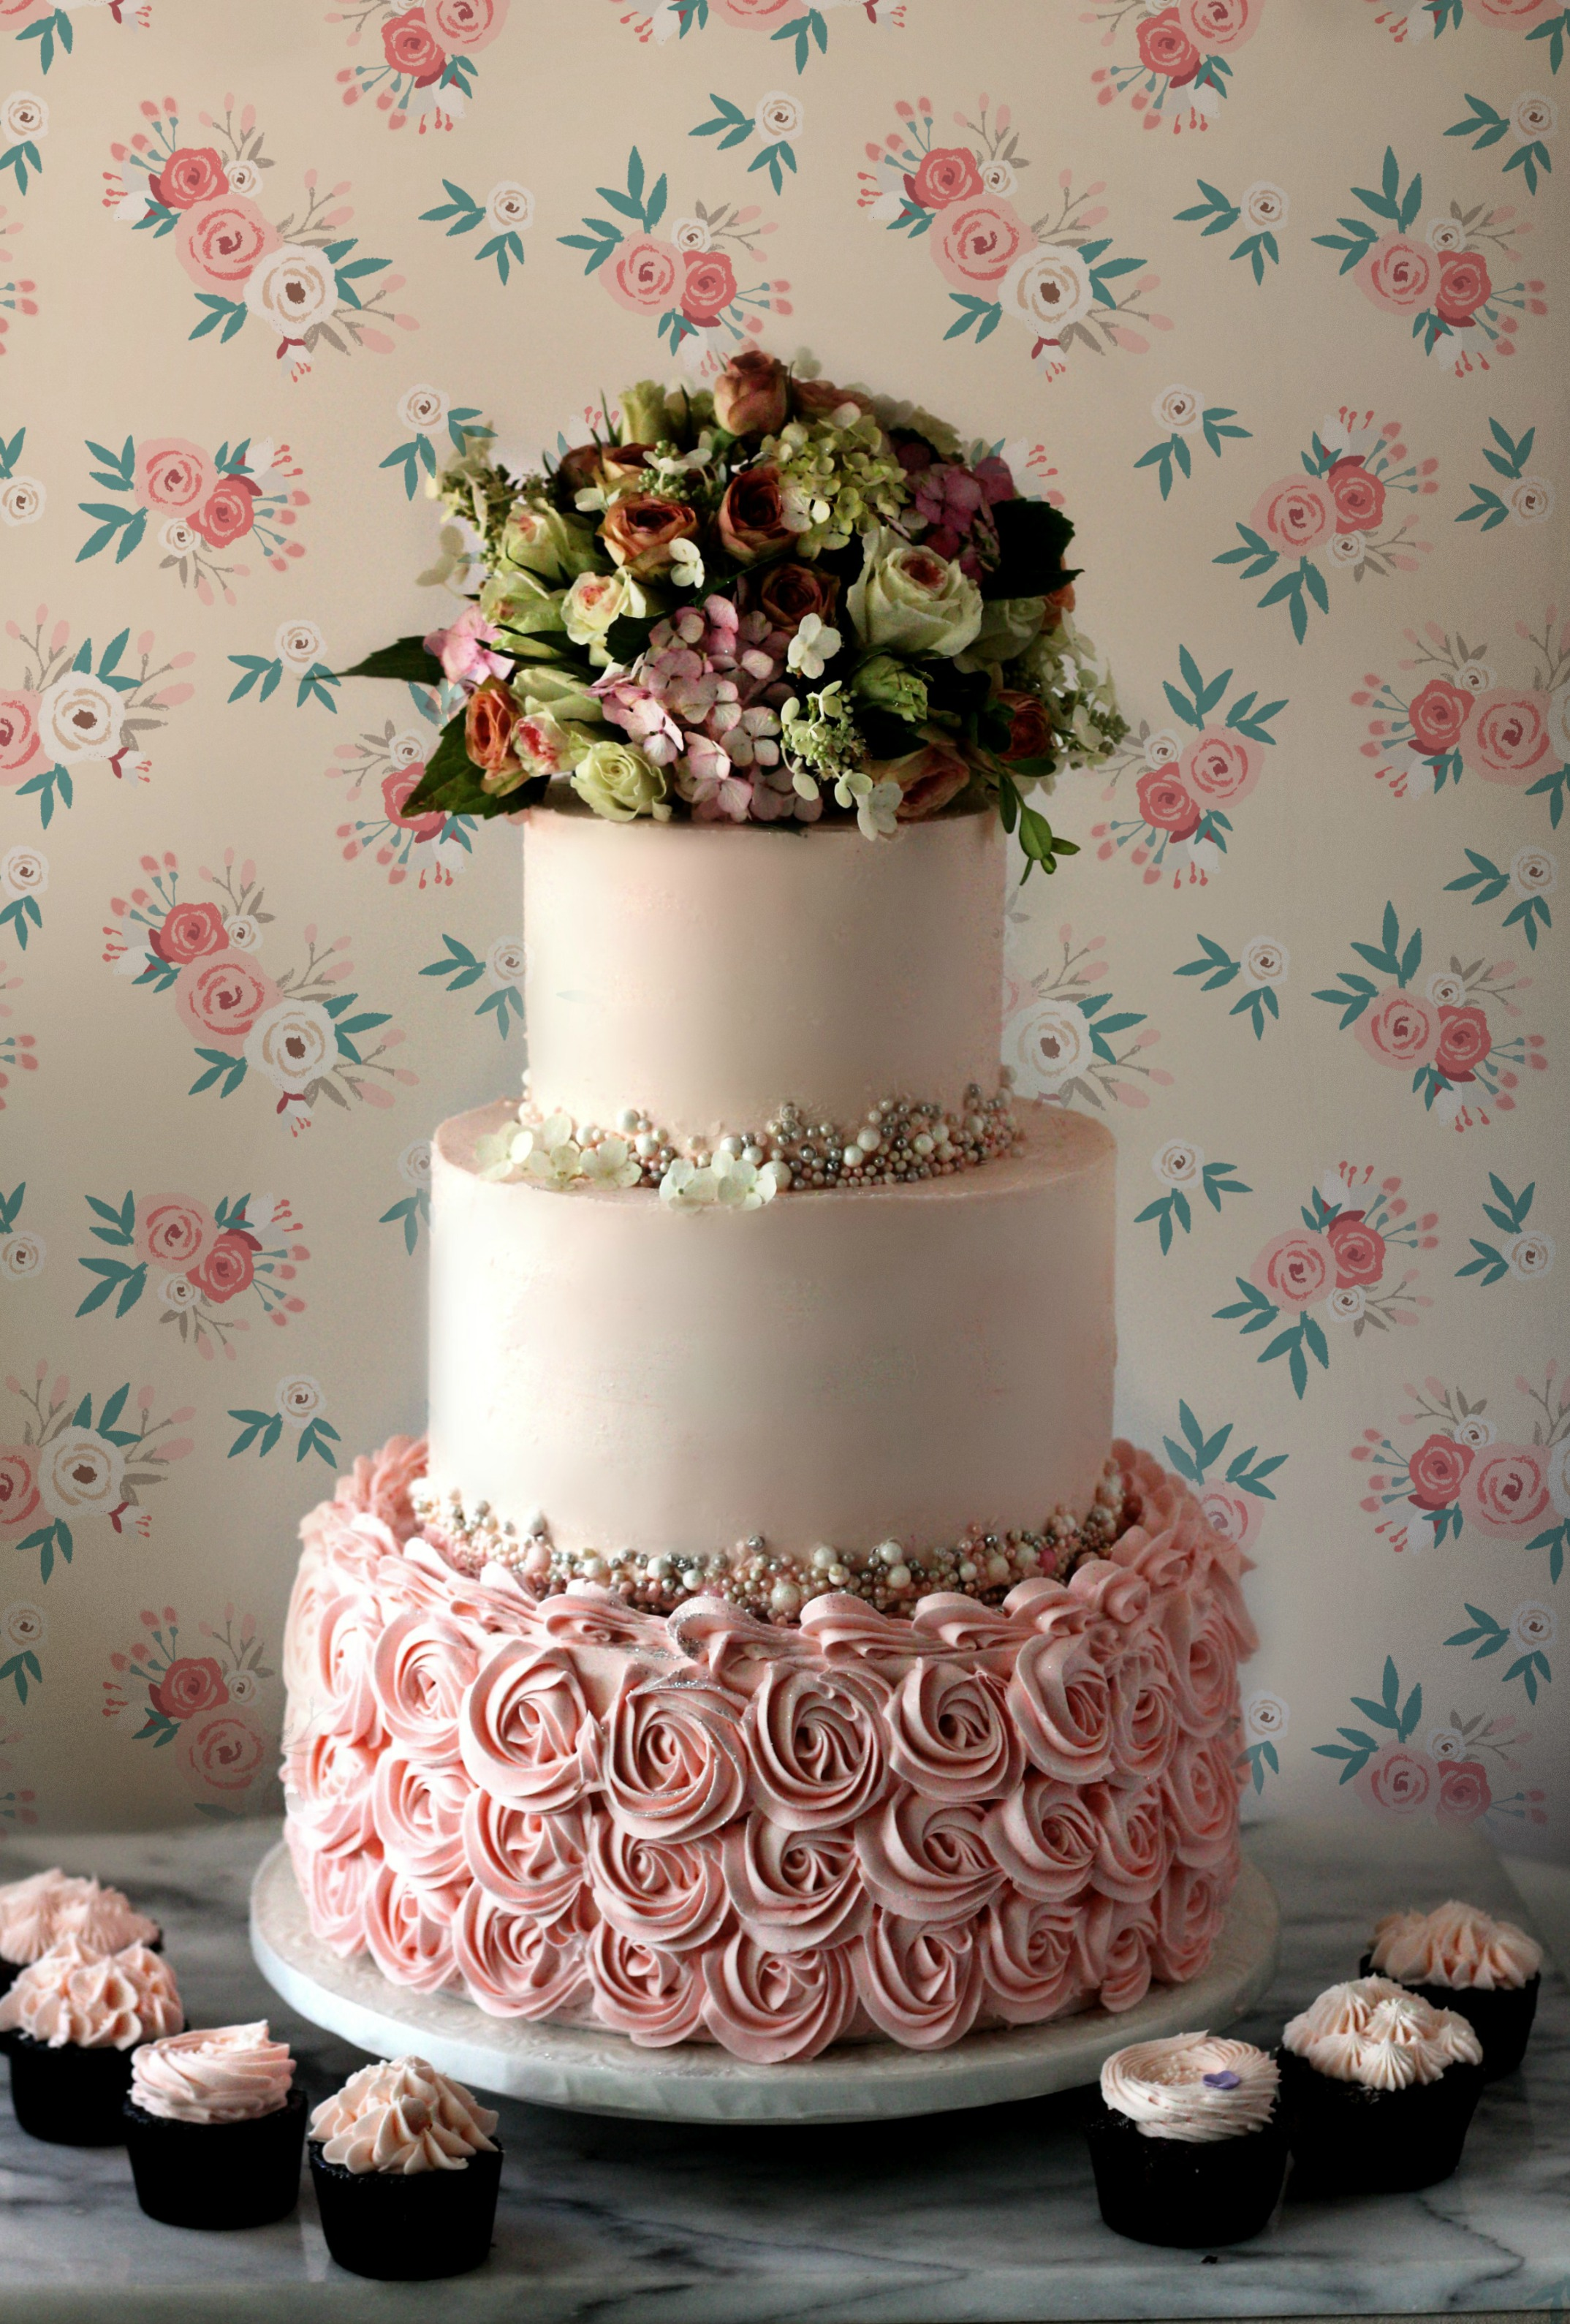 pink rosettes ombre all buttercream cake with fresh floral topper roses hydrangea floral wall paper